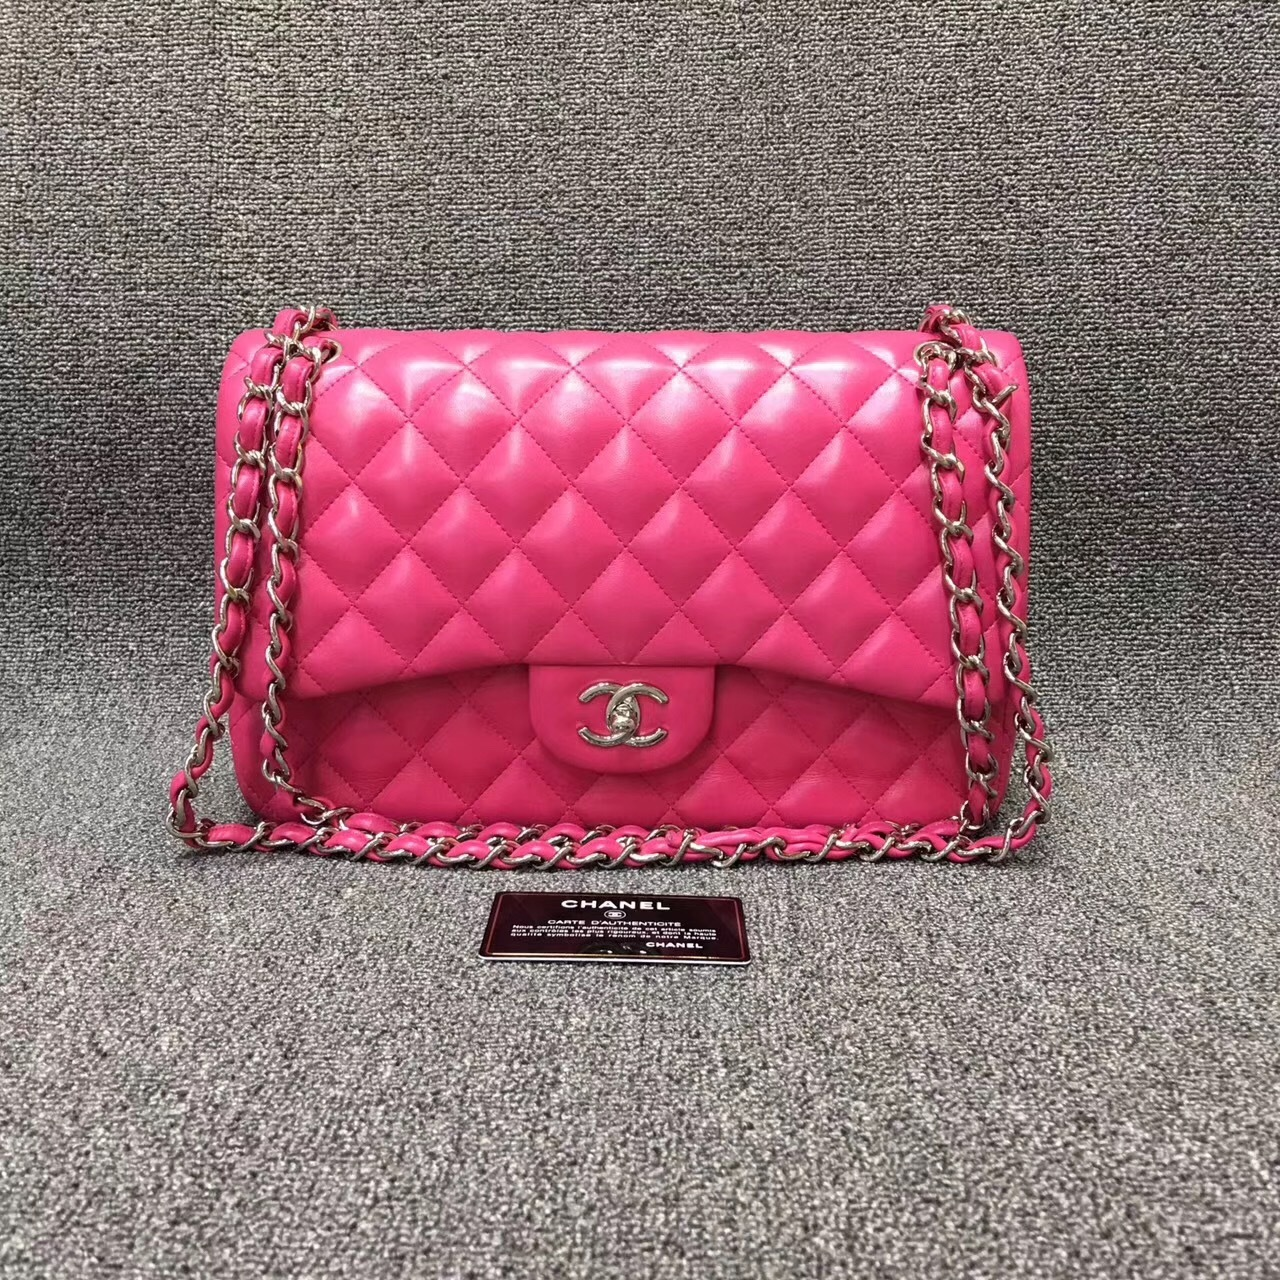 108742f88df AUTHENTIC CHANEL HOT PINK QUILTED LAMBSKIN JUMBO DOUBLE FLAP BAG SHW ...